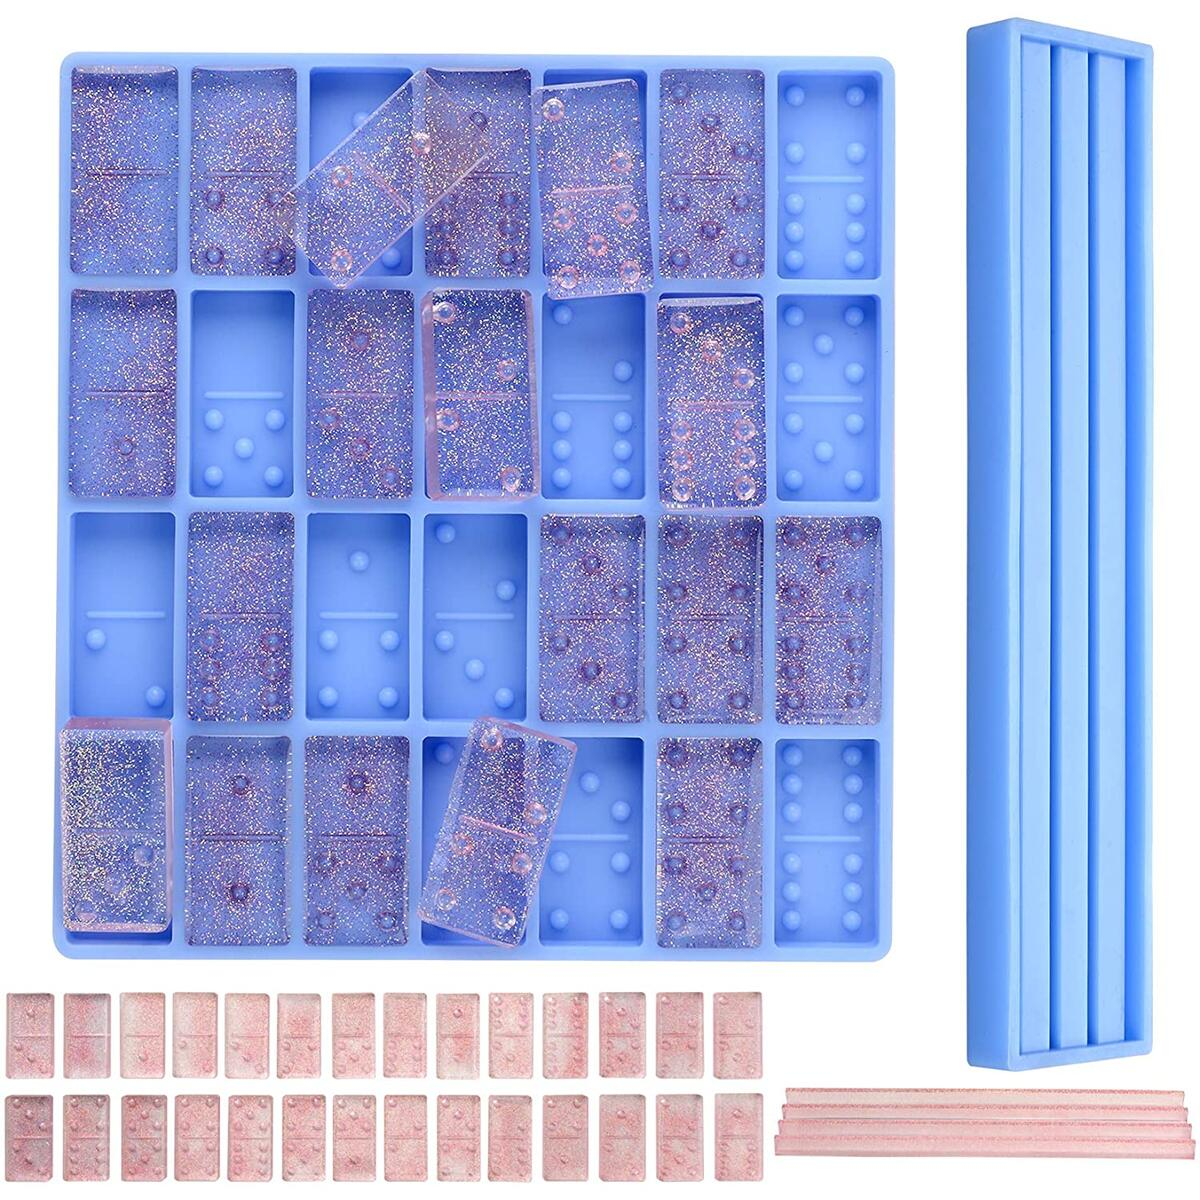 Set of Domino Molds for Resin Casting – 2 pcs Durable Silicone Mold for Epoxy Domino Pieces and Trays – Mold Trays for Soaps, Bath Bomb, Beeswax, Resin, and Chocolate